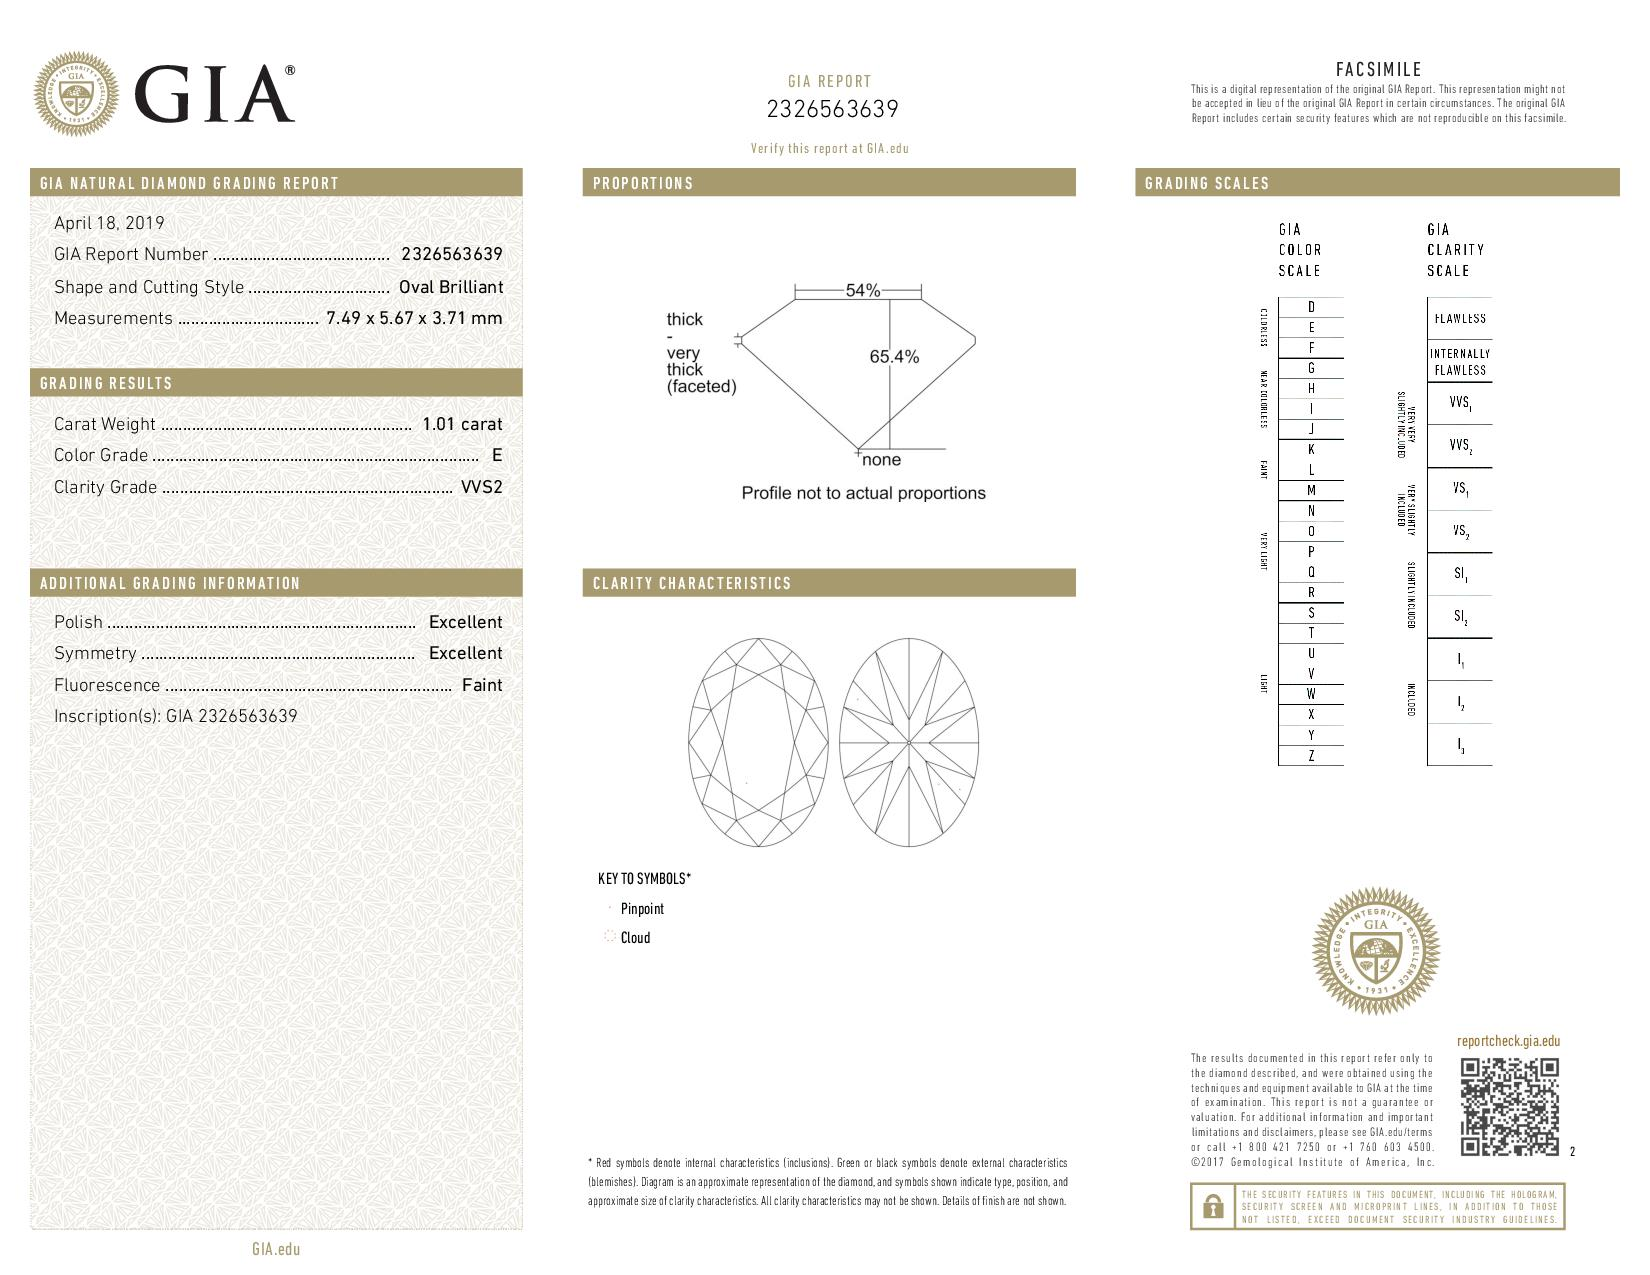 This is a 1.01 carat oval shape, E color, VVS2 clarity natural diamond accompanied by a GIA grading report.